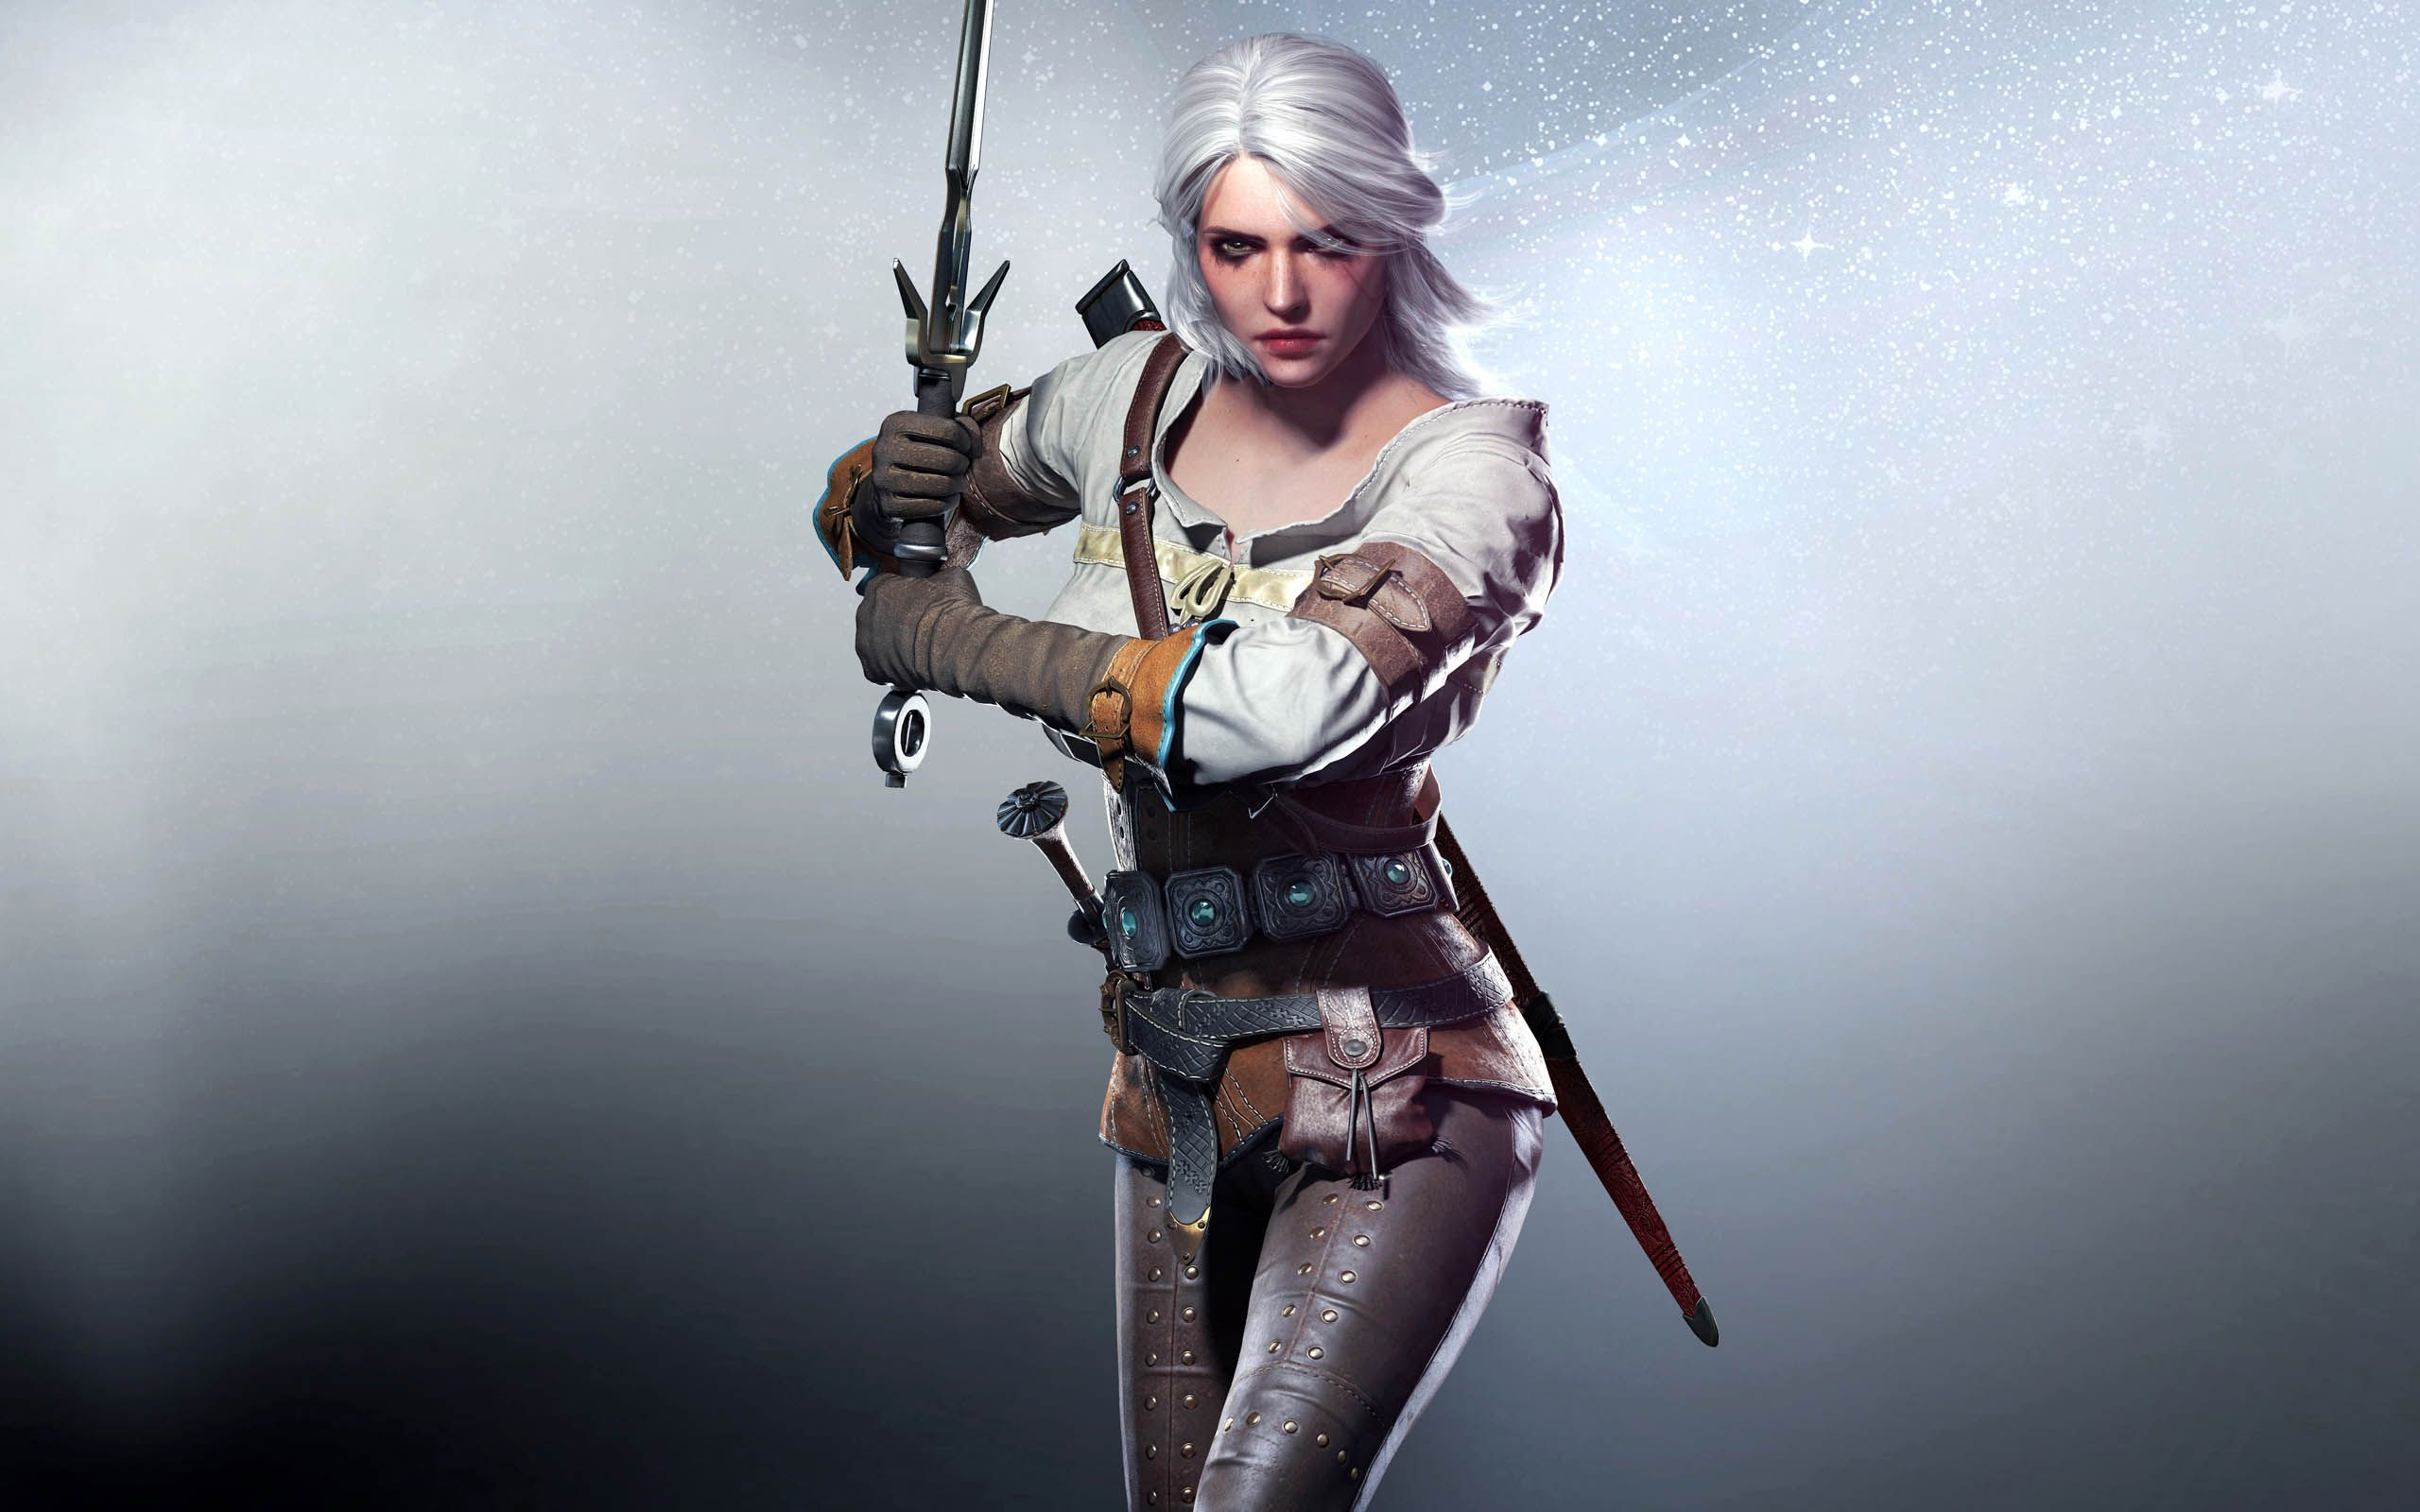 The Witcher Wild Hunt The Witcher Yennefer Of Vengerberg